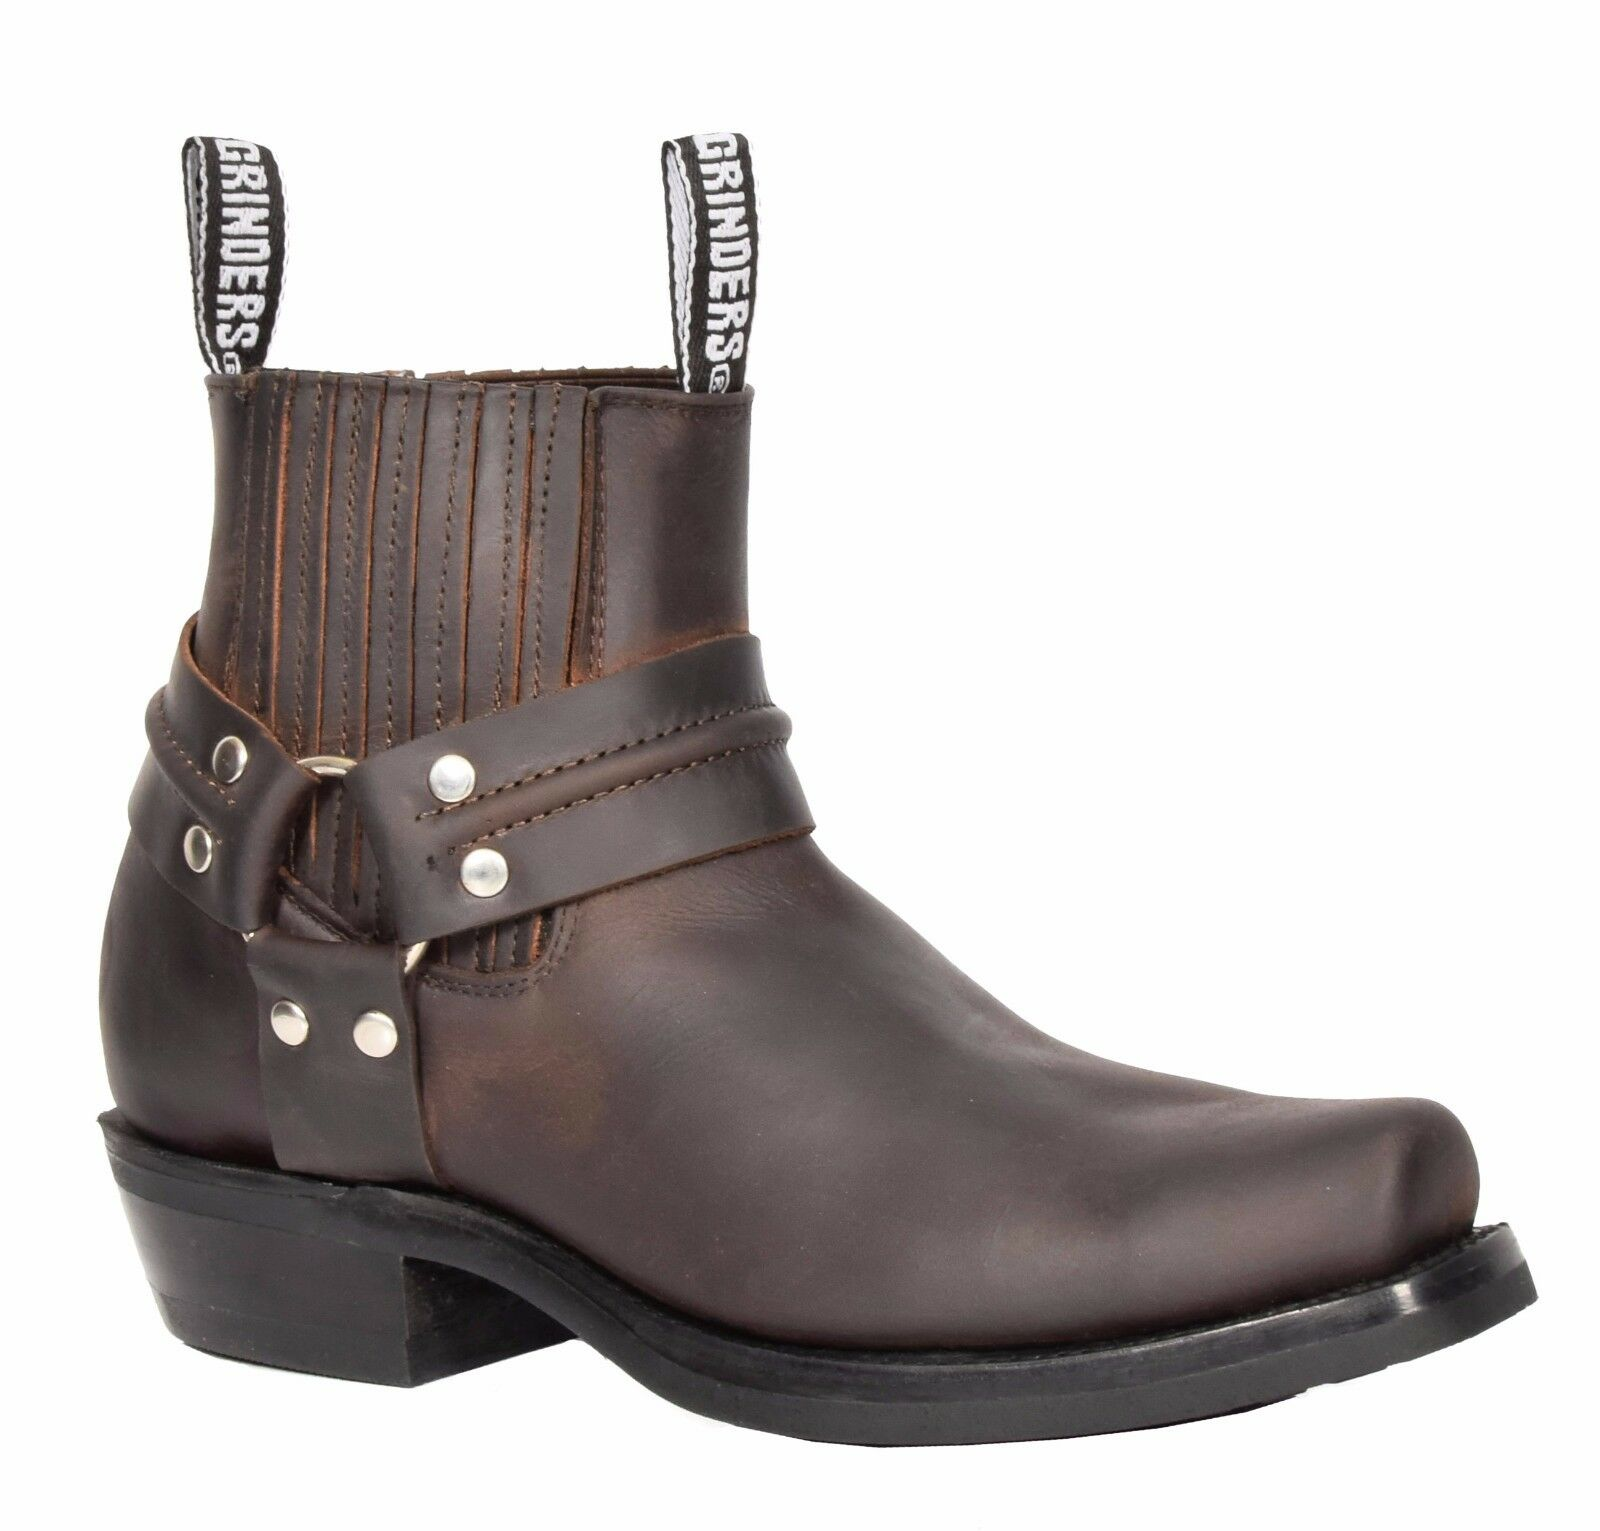 Mens braun Leather Ankle Biker Stiefel Slip On Square Toe Cowboy Grinders Stiefel